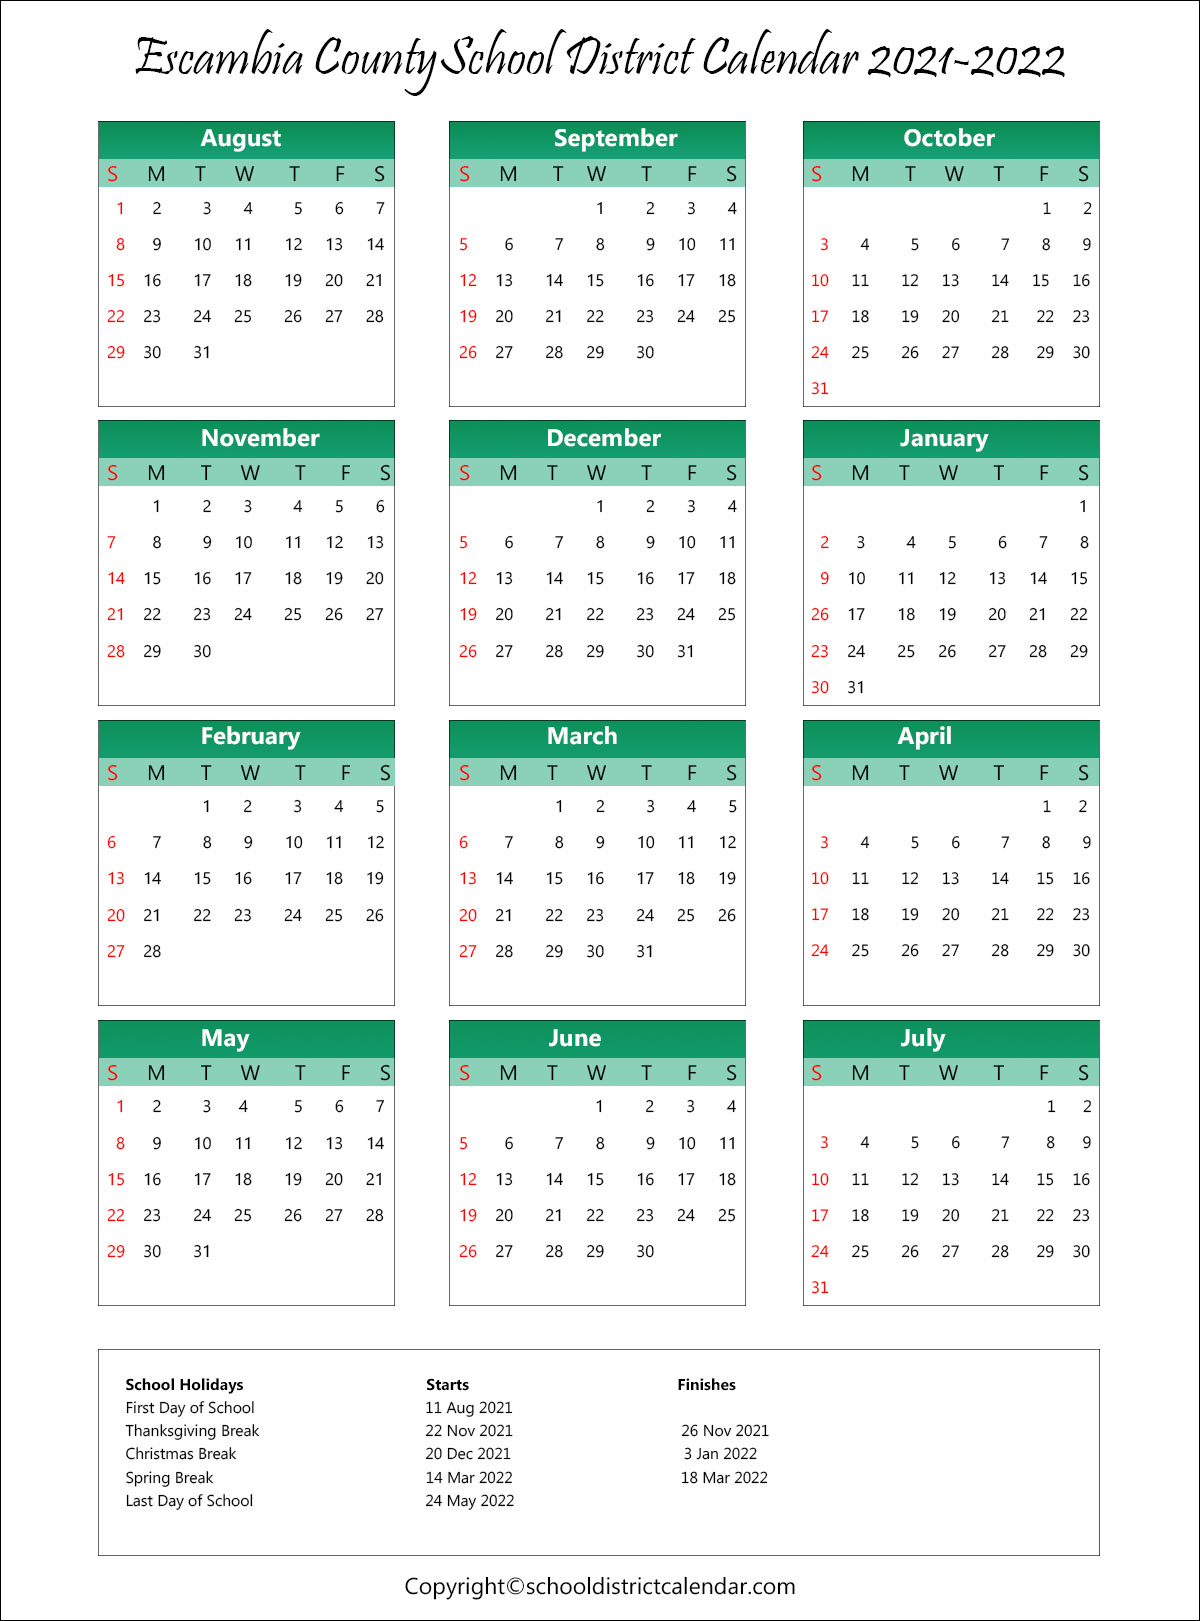 Escambia County School District Calendar Holidays 2021 2022